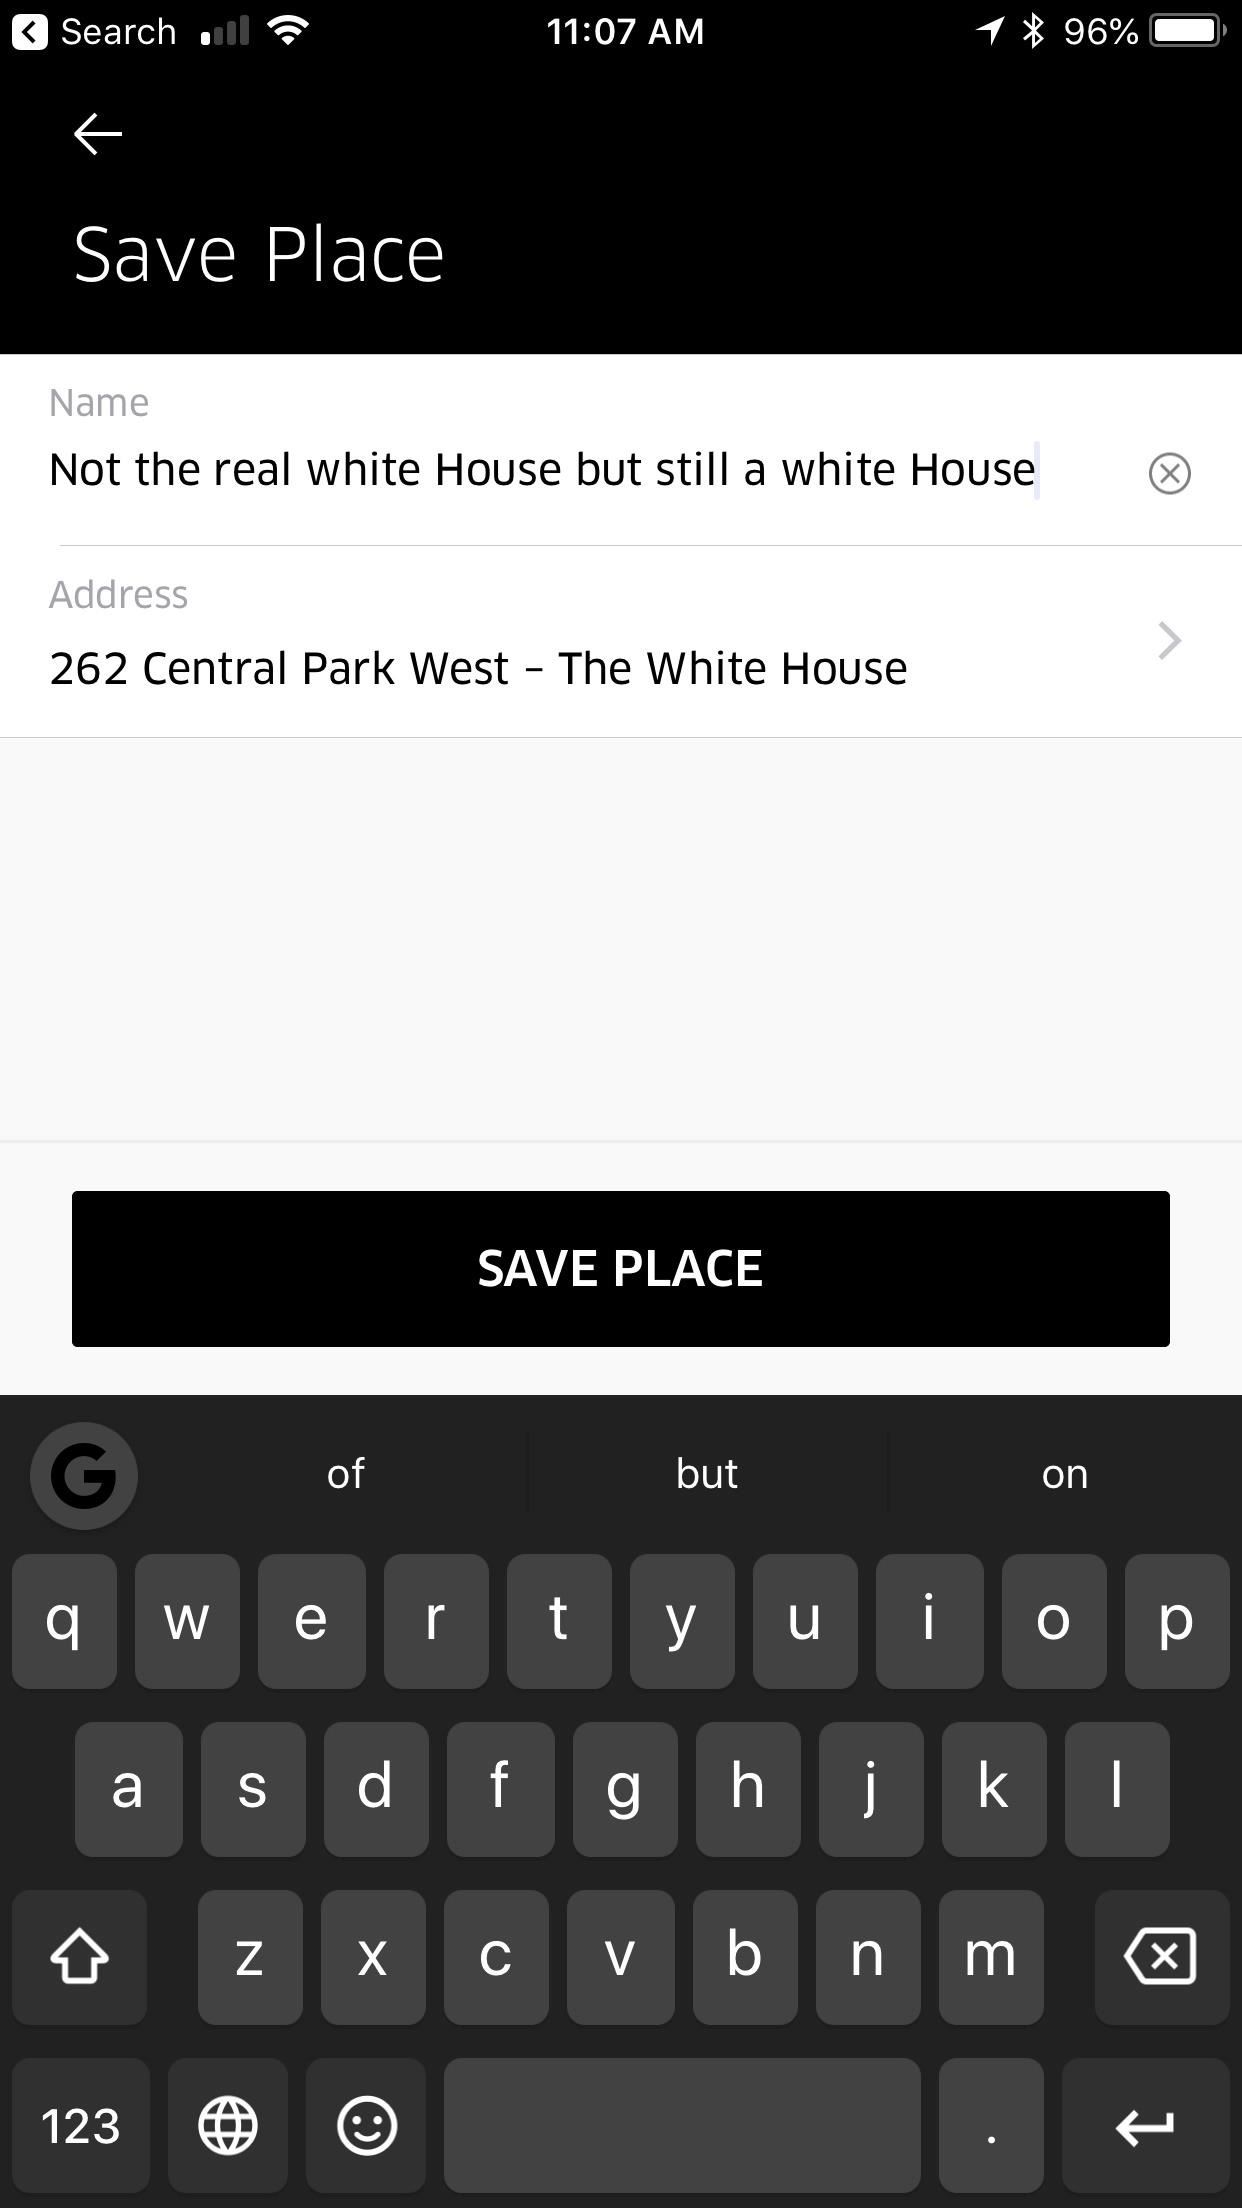 Add Your Home, Work & Favorite Places to Uber to Get Rides Faster